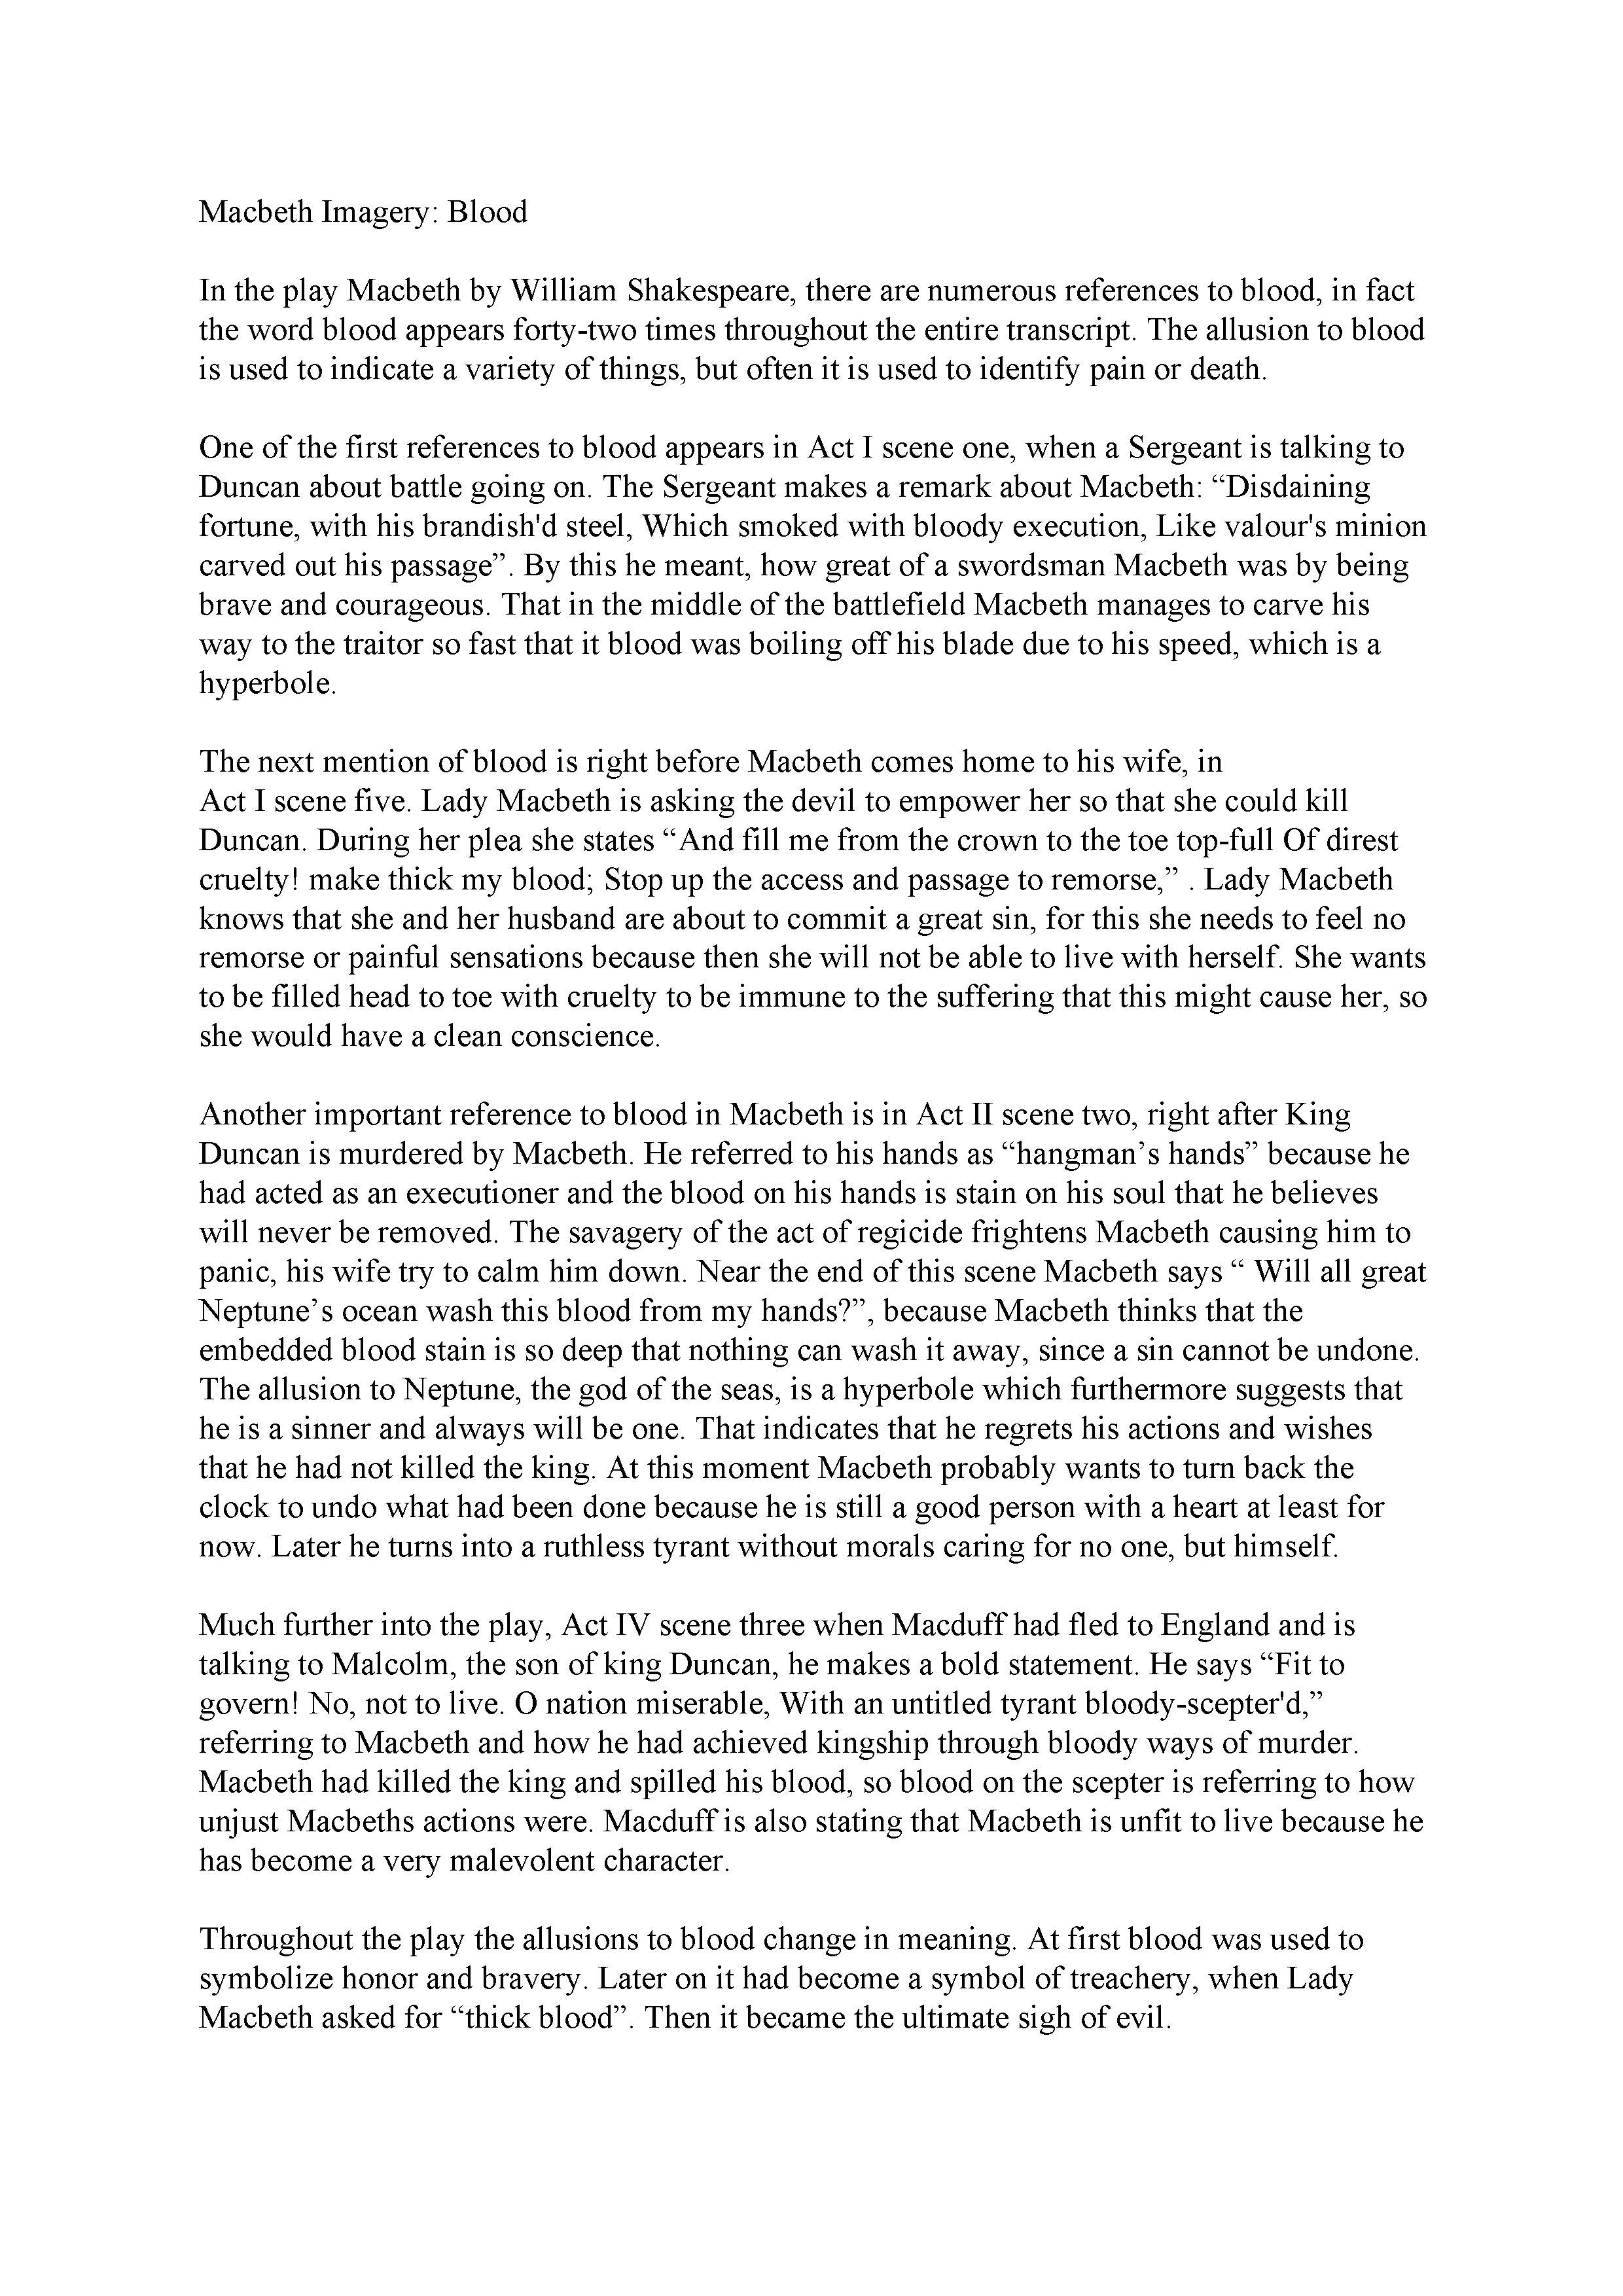 012 Macbeth Essay Sample Free Write Archaicawful Writing Prompts Examples Website To Essays Full